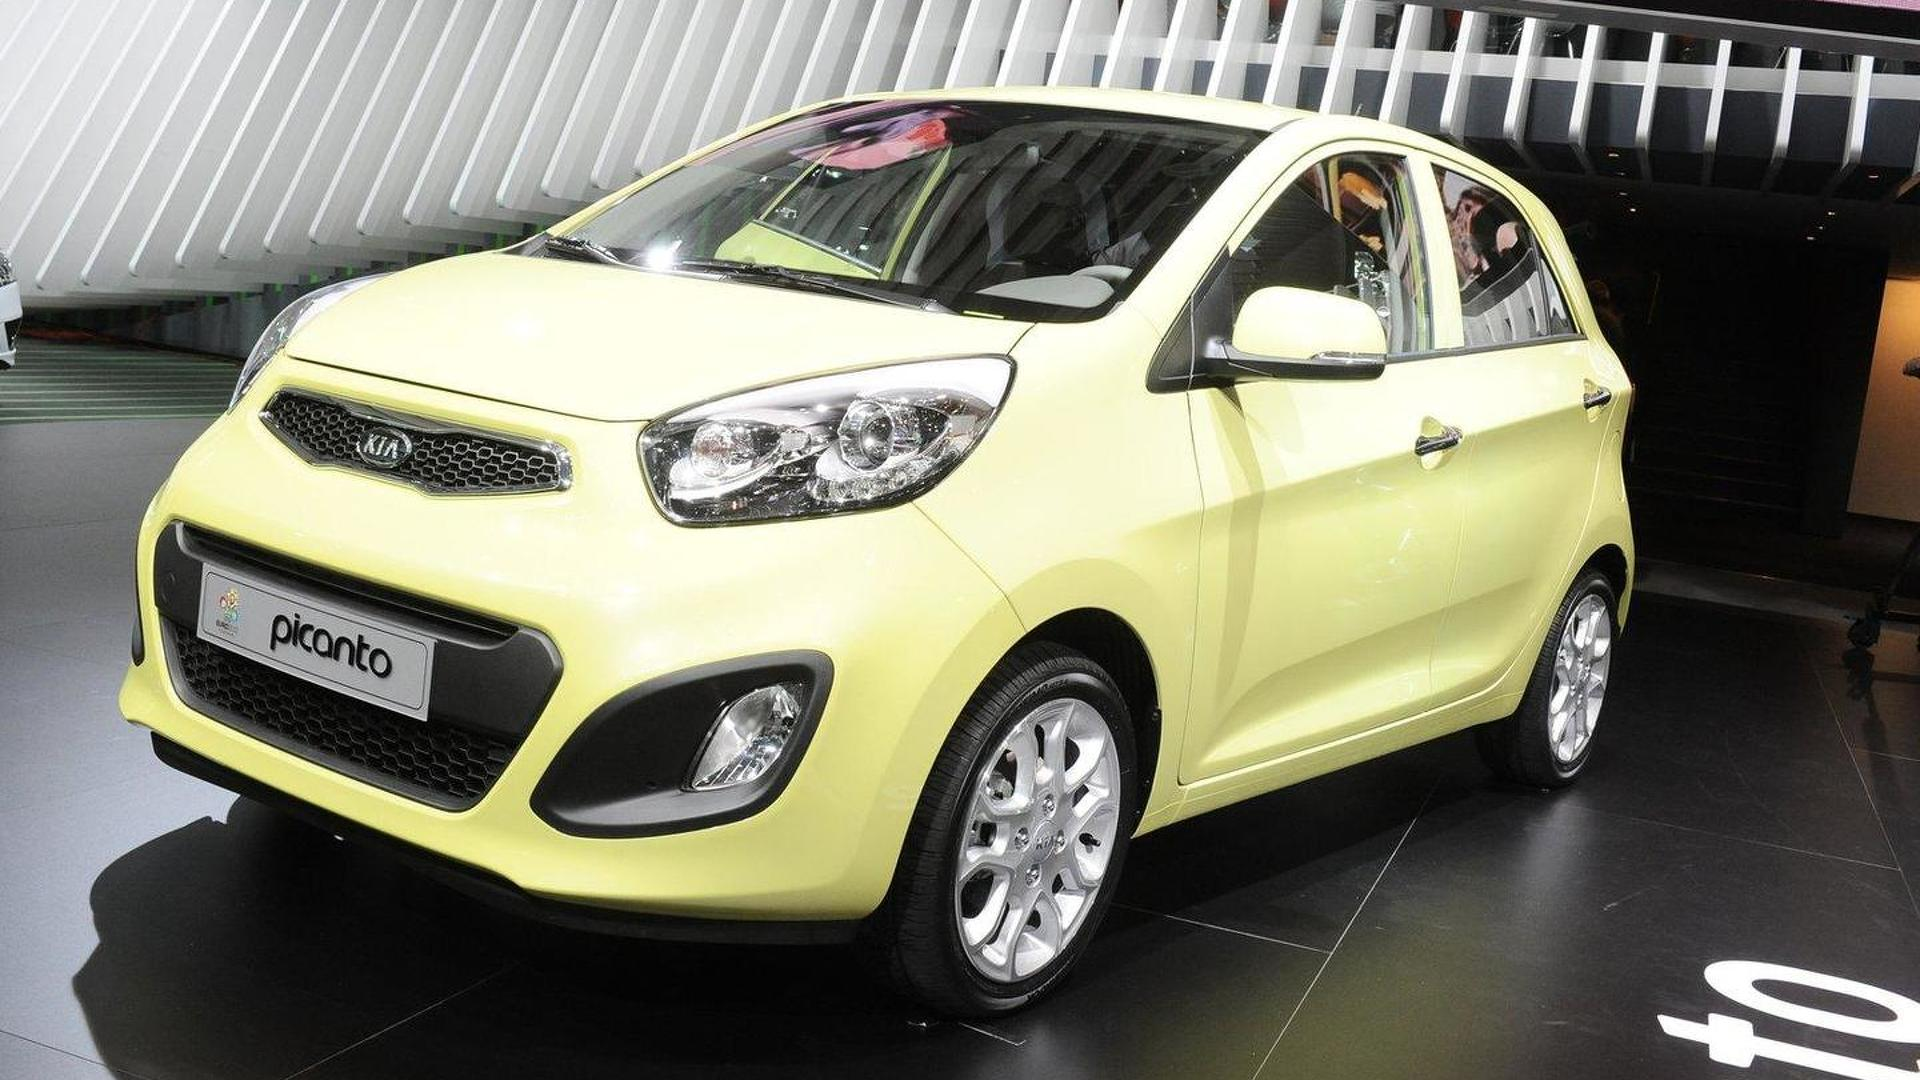 2013 Kia Picanto LPG to be revealed at Frankfurt Motor Show